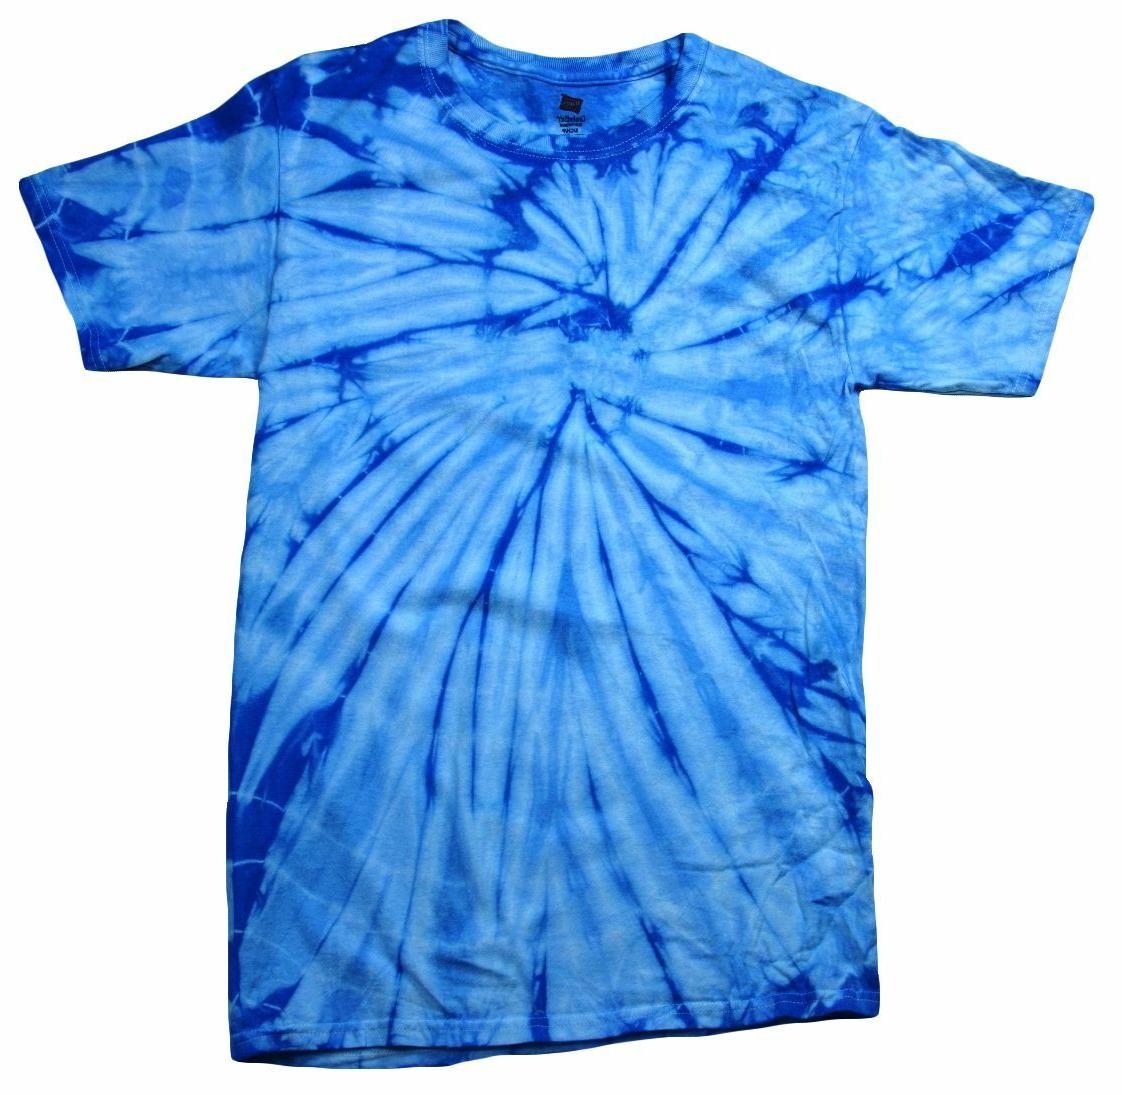 Multi-Color Tie Dye T-Shirts Kids & Hand dyed Cotton